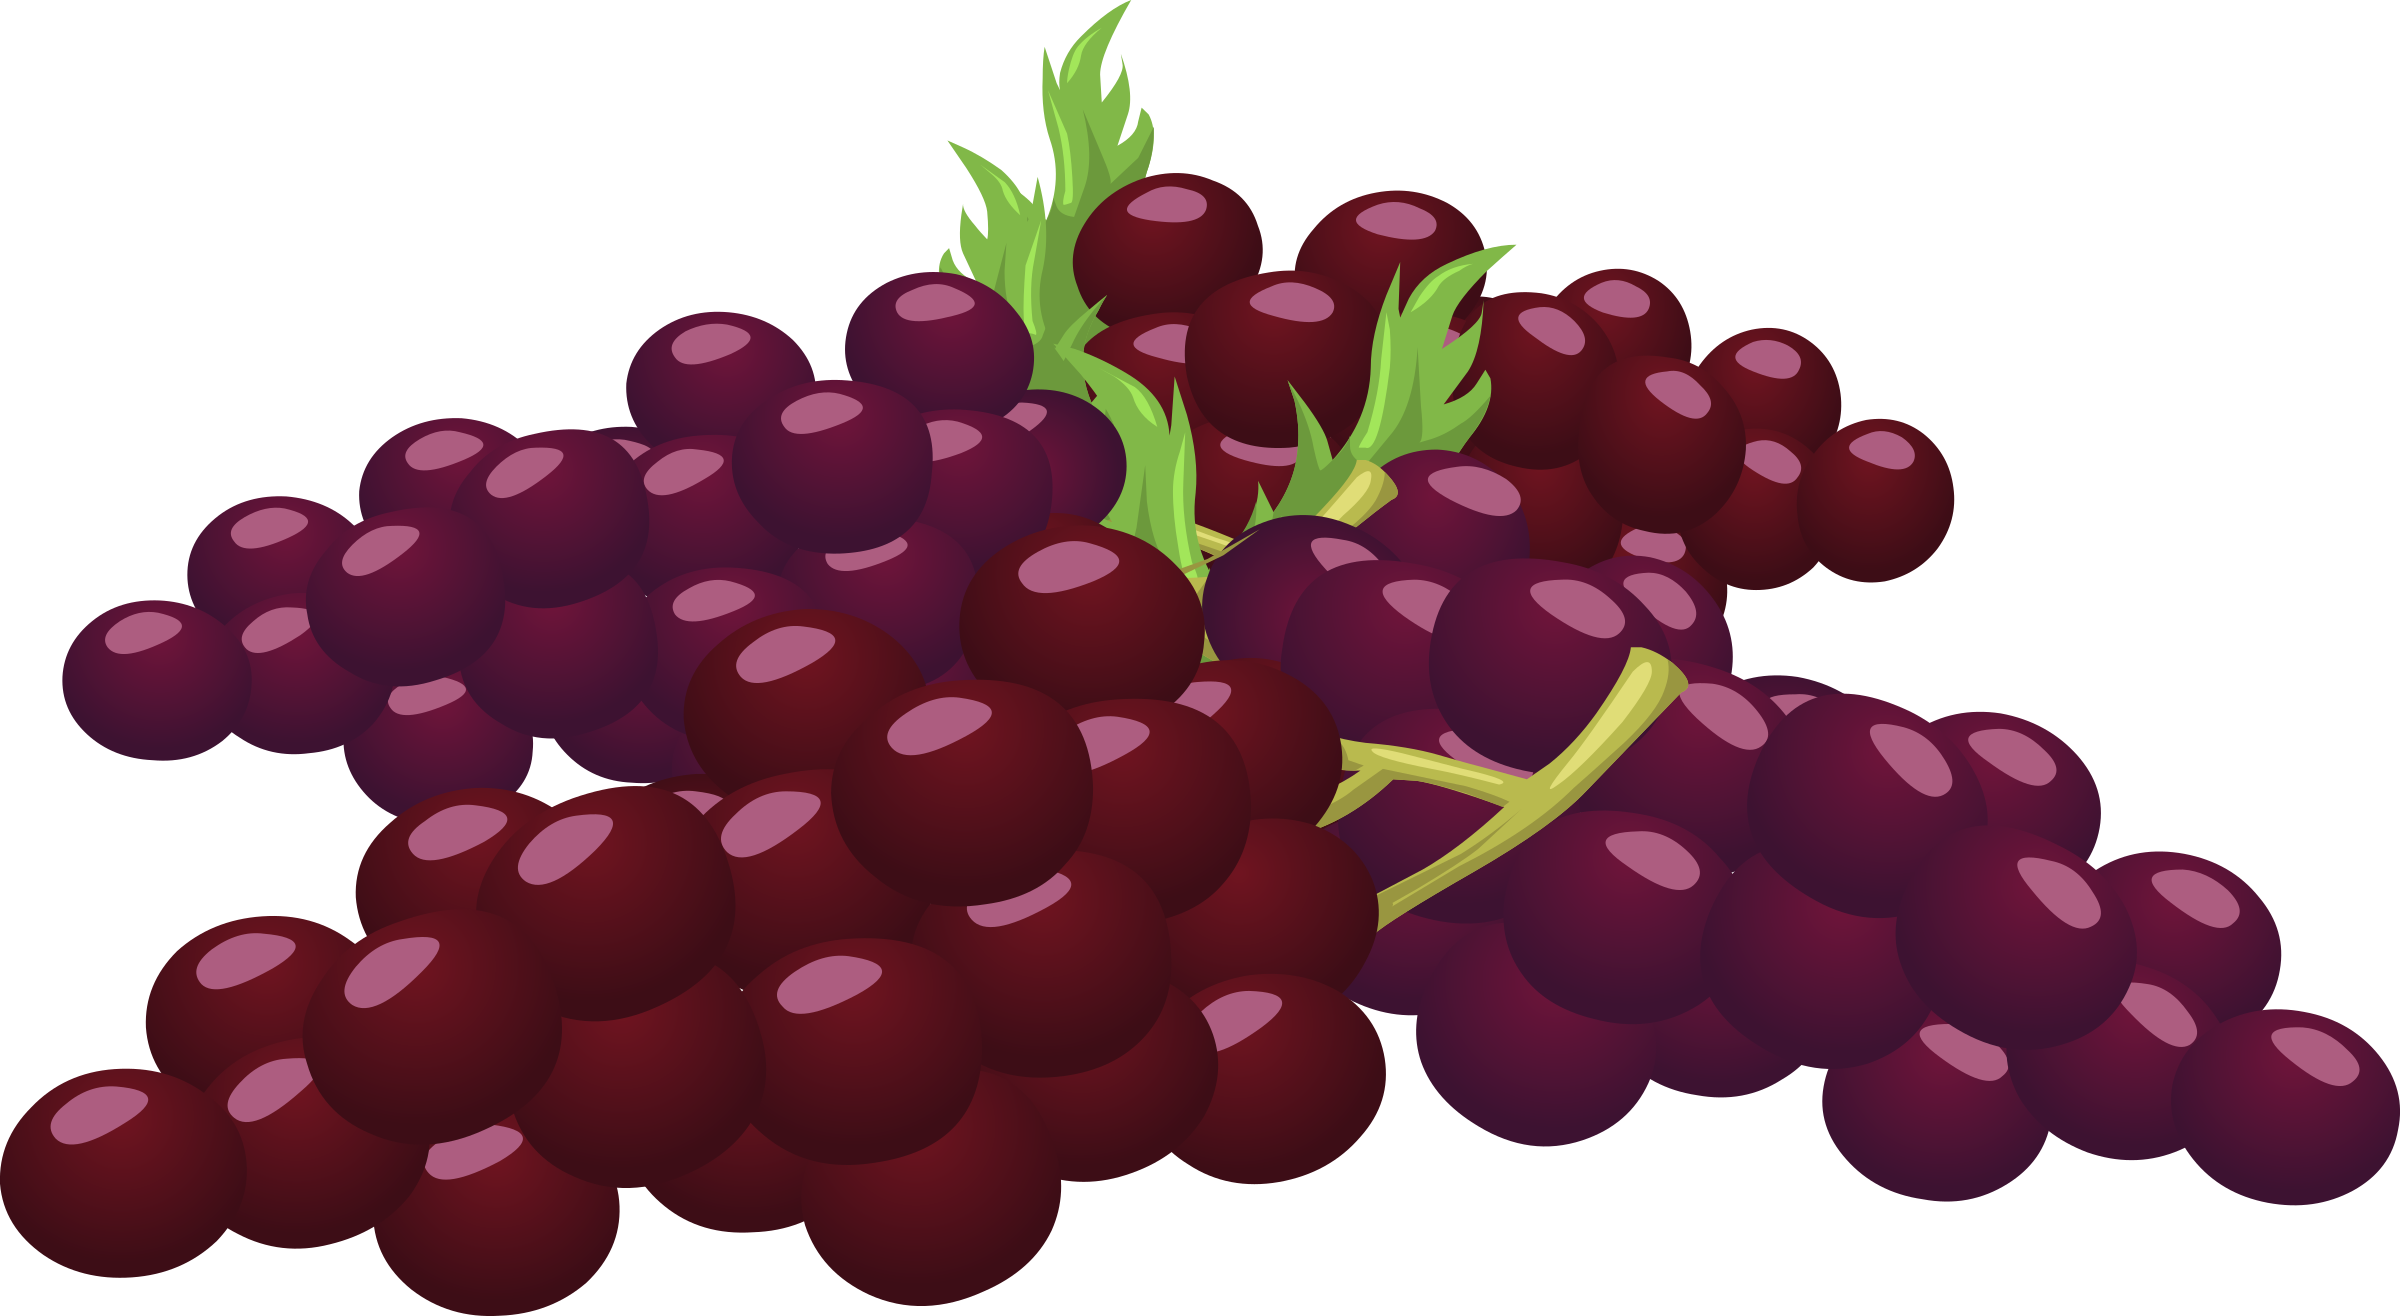 Grapes clipart purple food. Bunch of big image